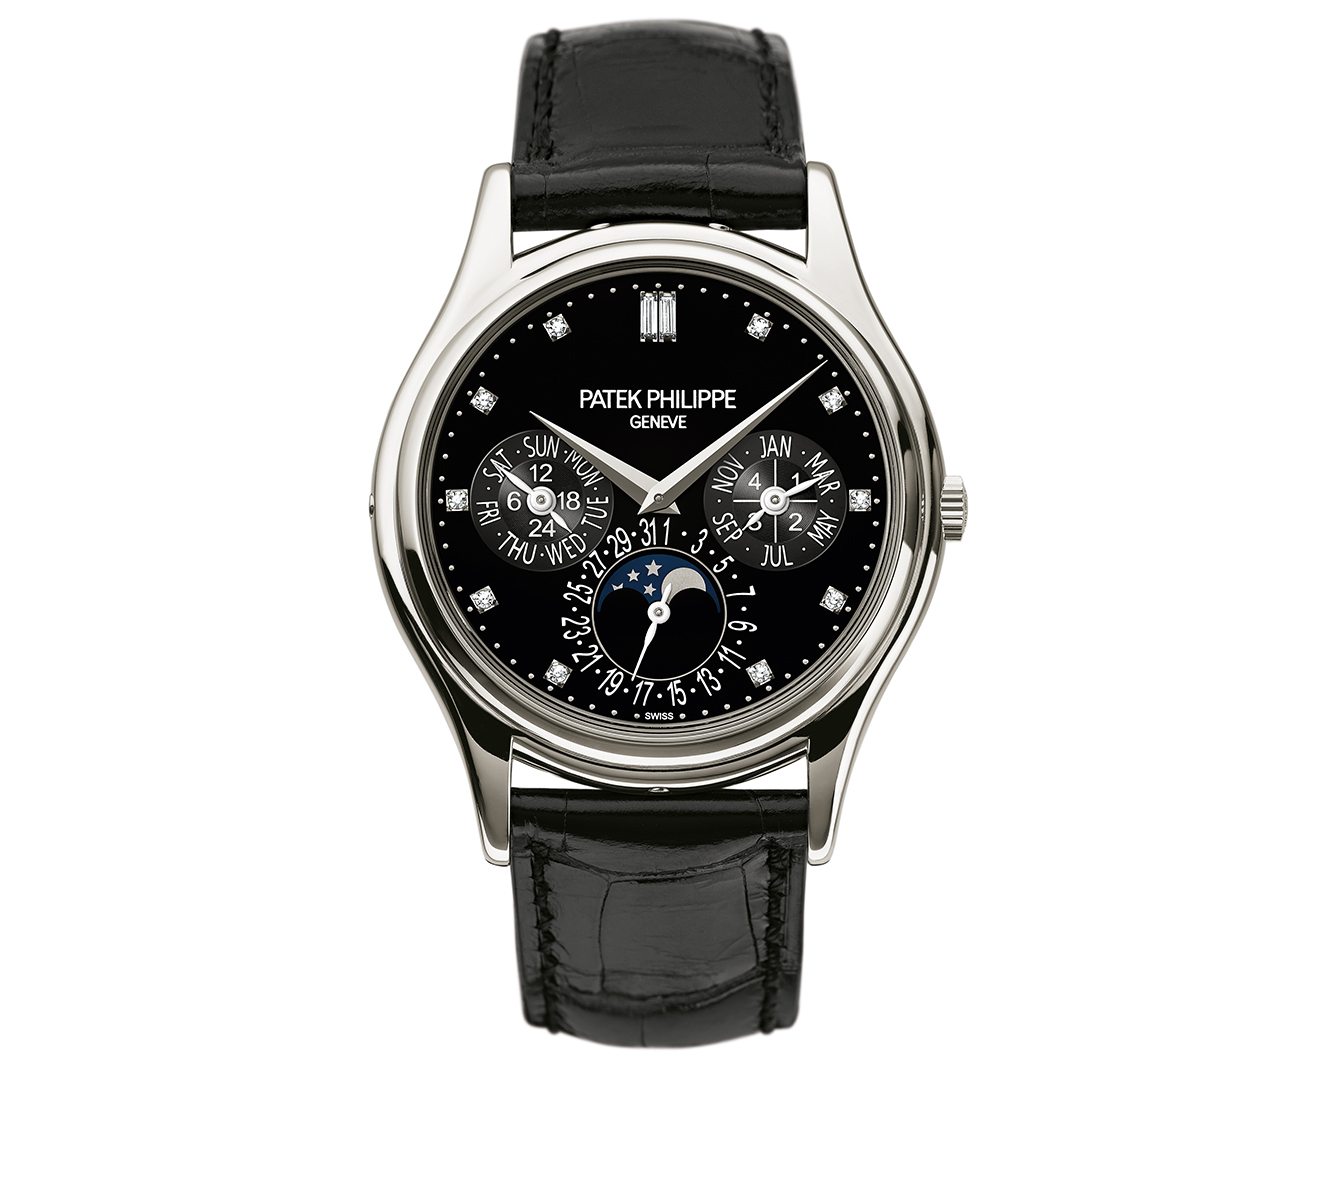 Часы Perpetual Calendar PATEK PHILIPPE Grand Complications 5140 P-013 - фото 1 – Mercury